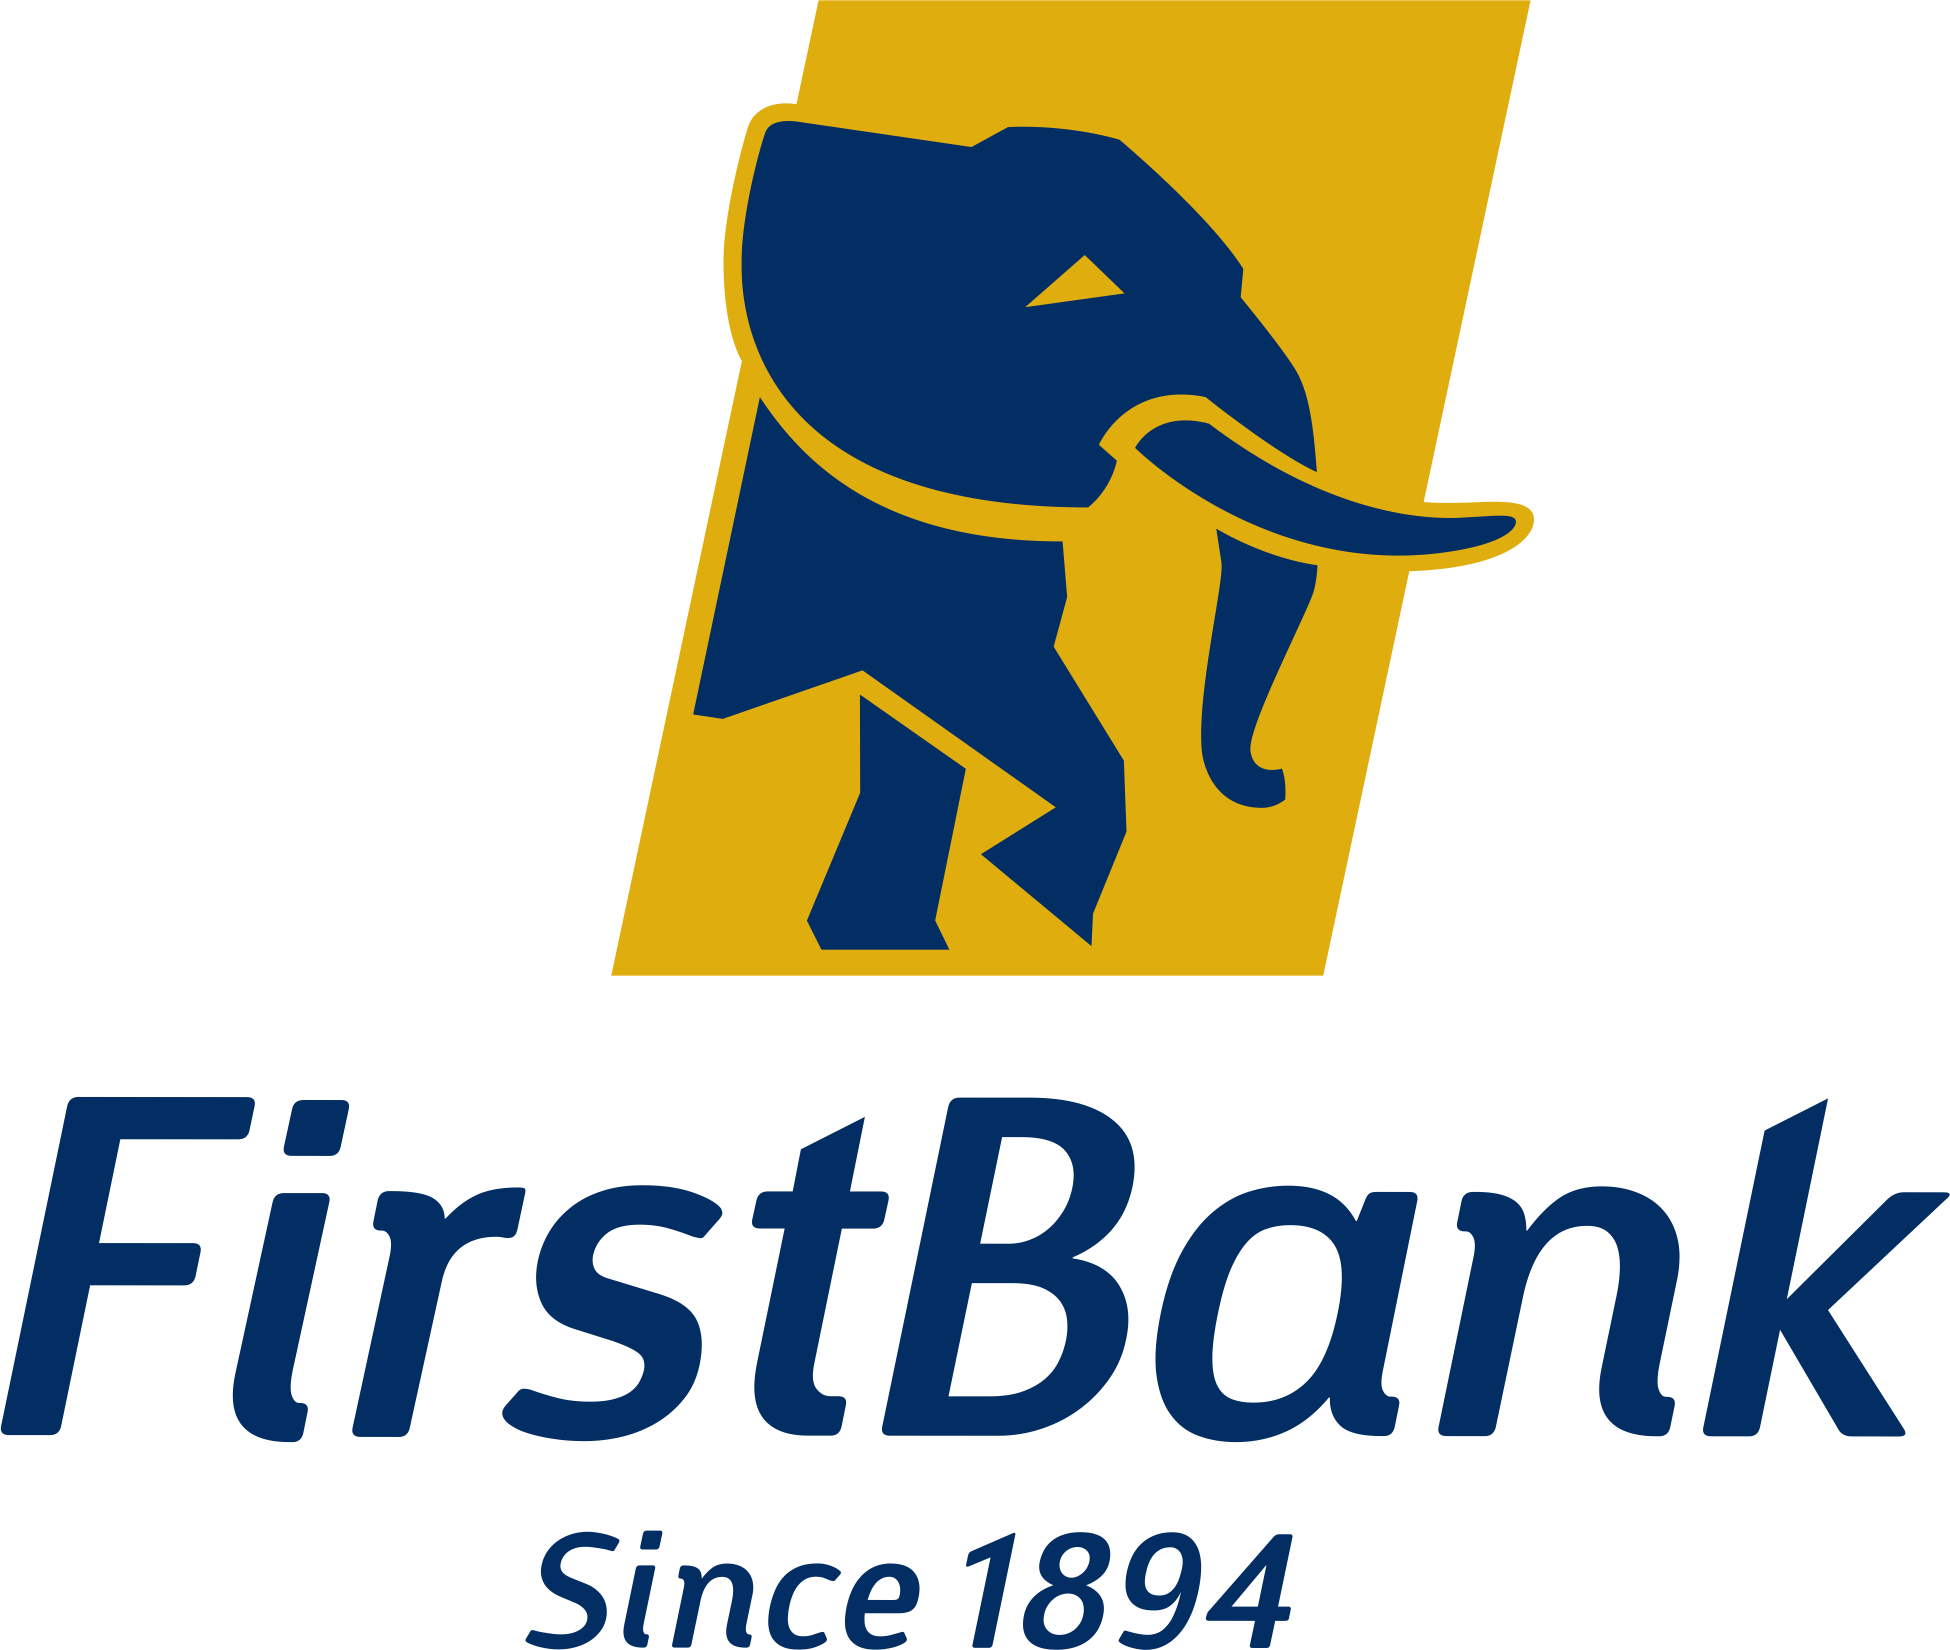 FirstBank promotes Financial Inclusion amongst Children with KidsFirst and MeFirst Accounts